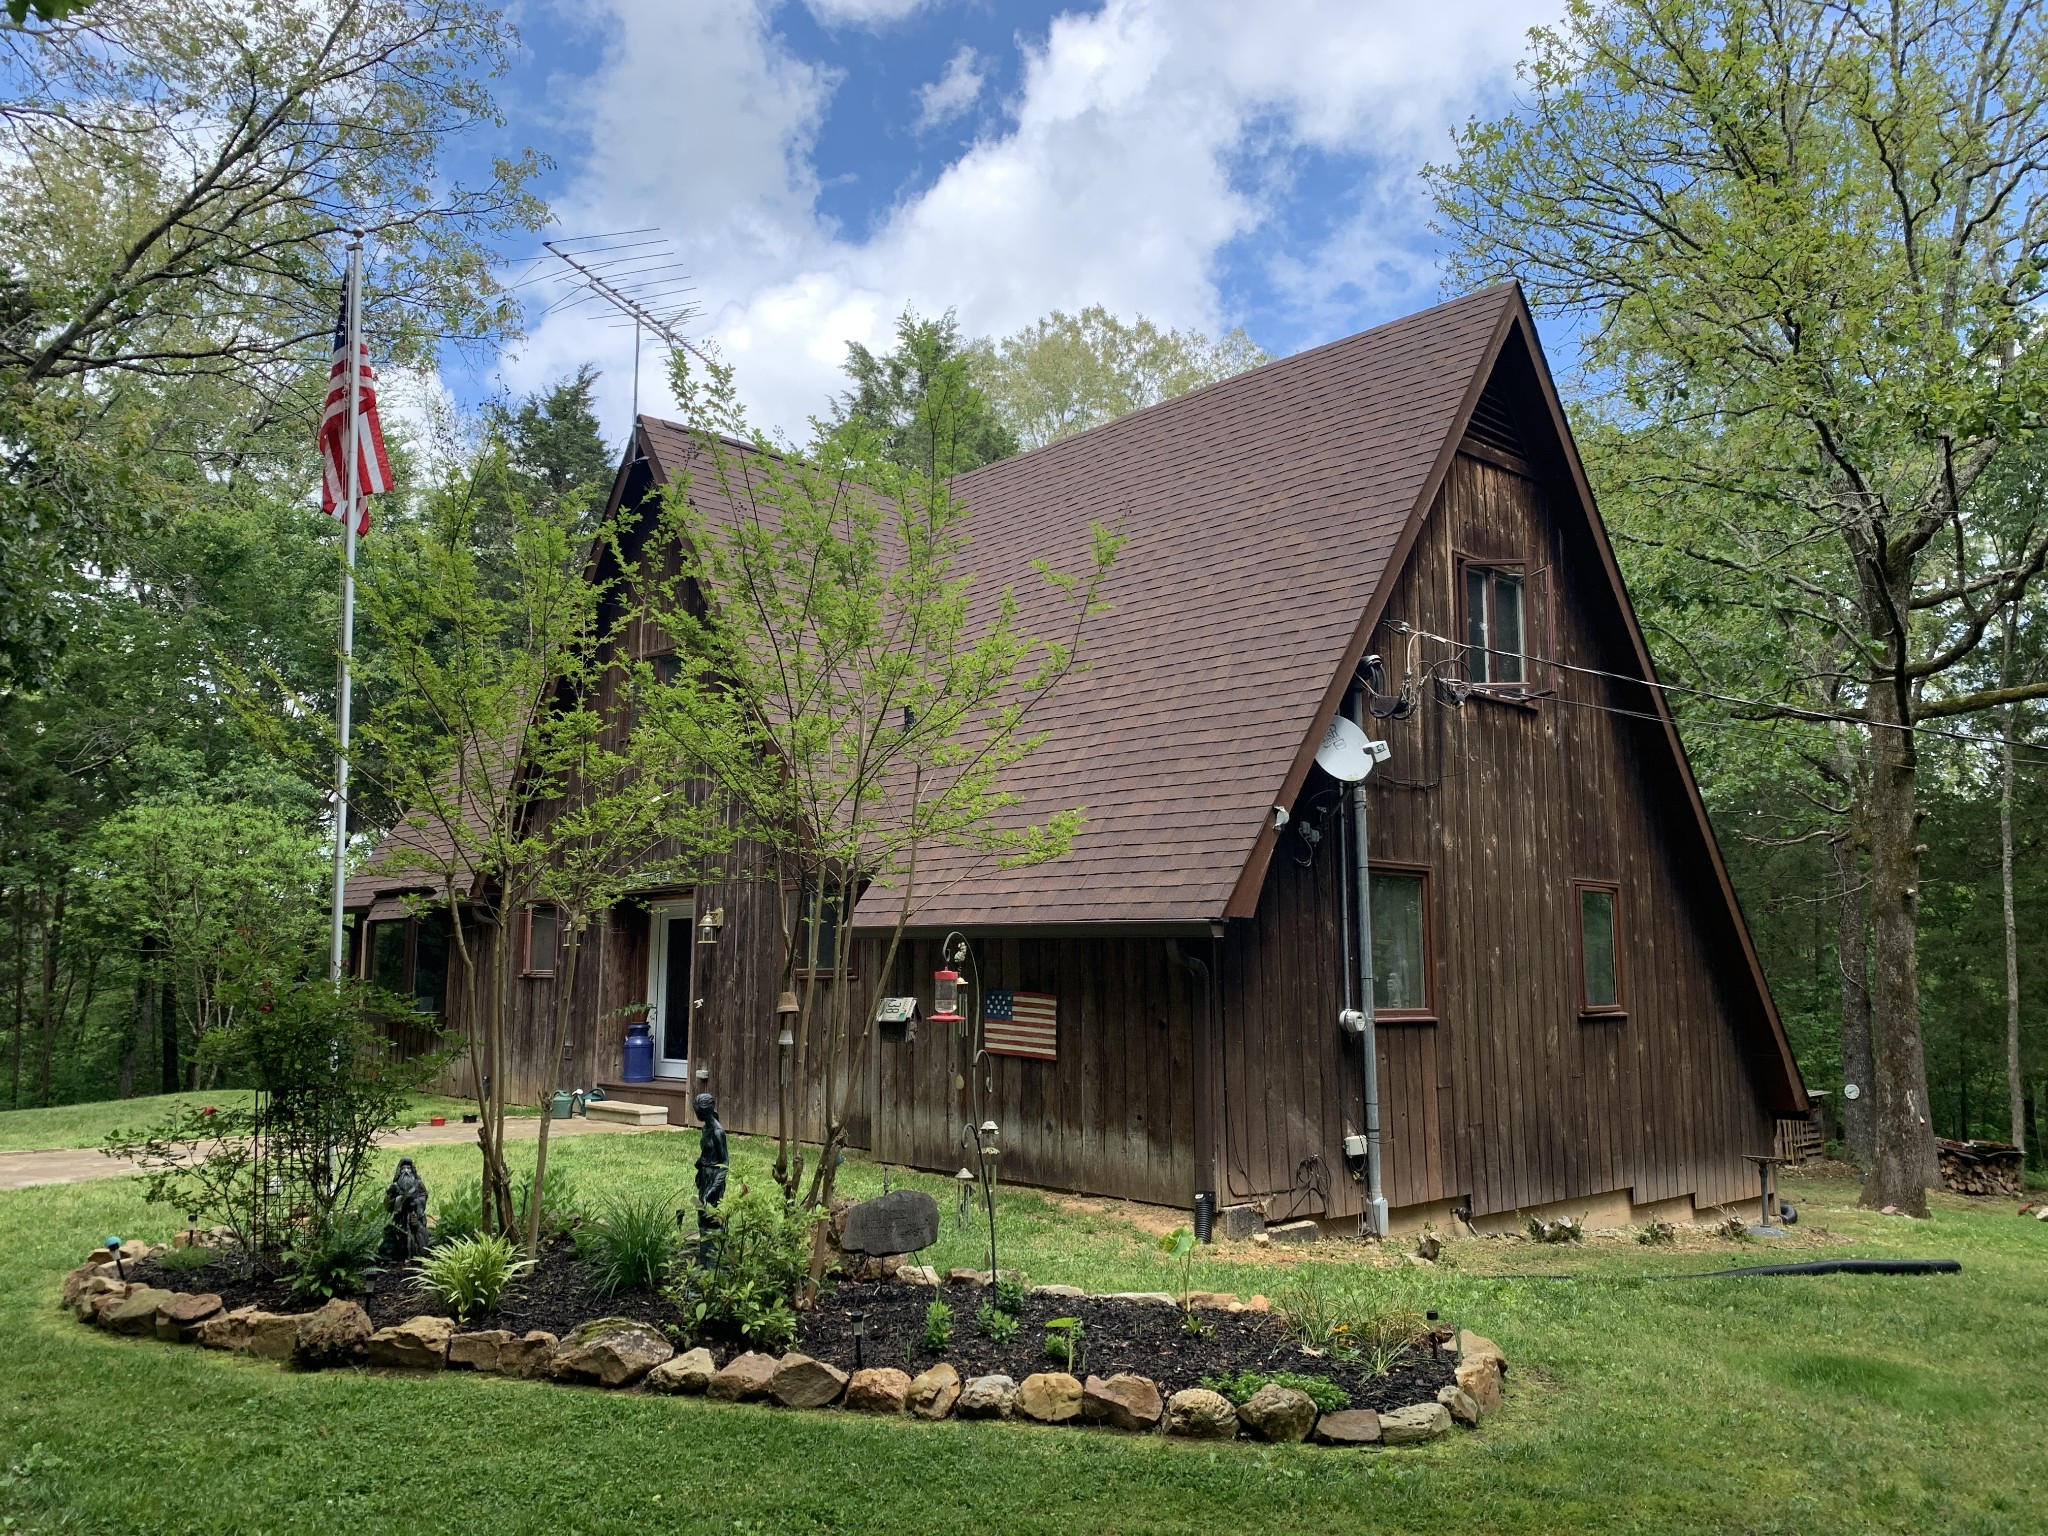 873 Coon Creek Rd, Dickson, TN 37055 - Dickson, TN real estate listing